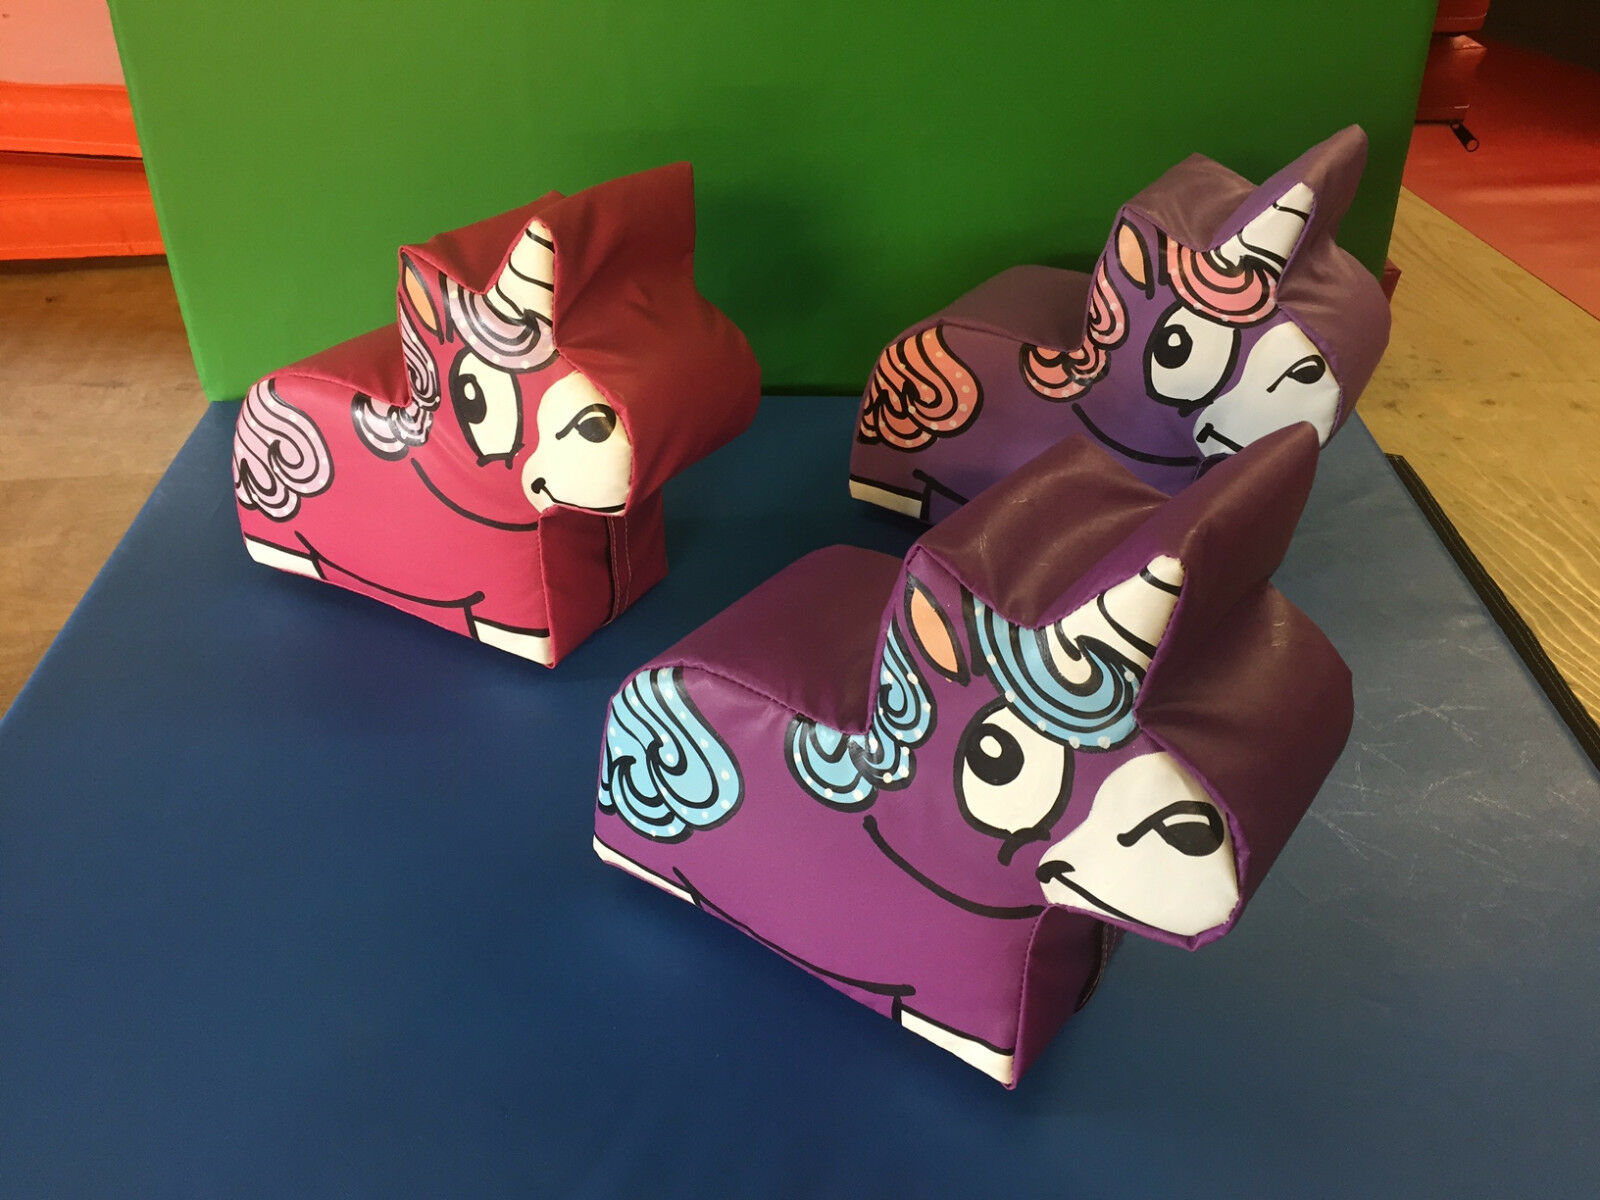 3 x Small Unicorn approx 14 x 10 x 8 inch Hand Painted